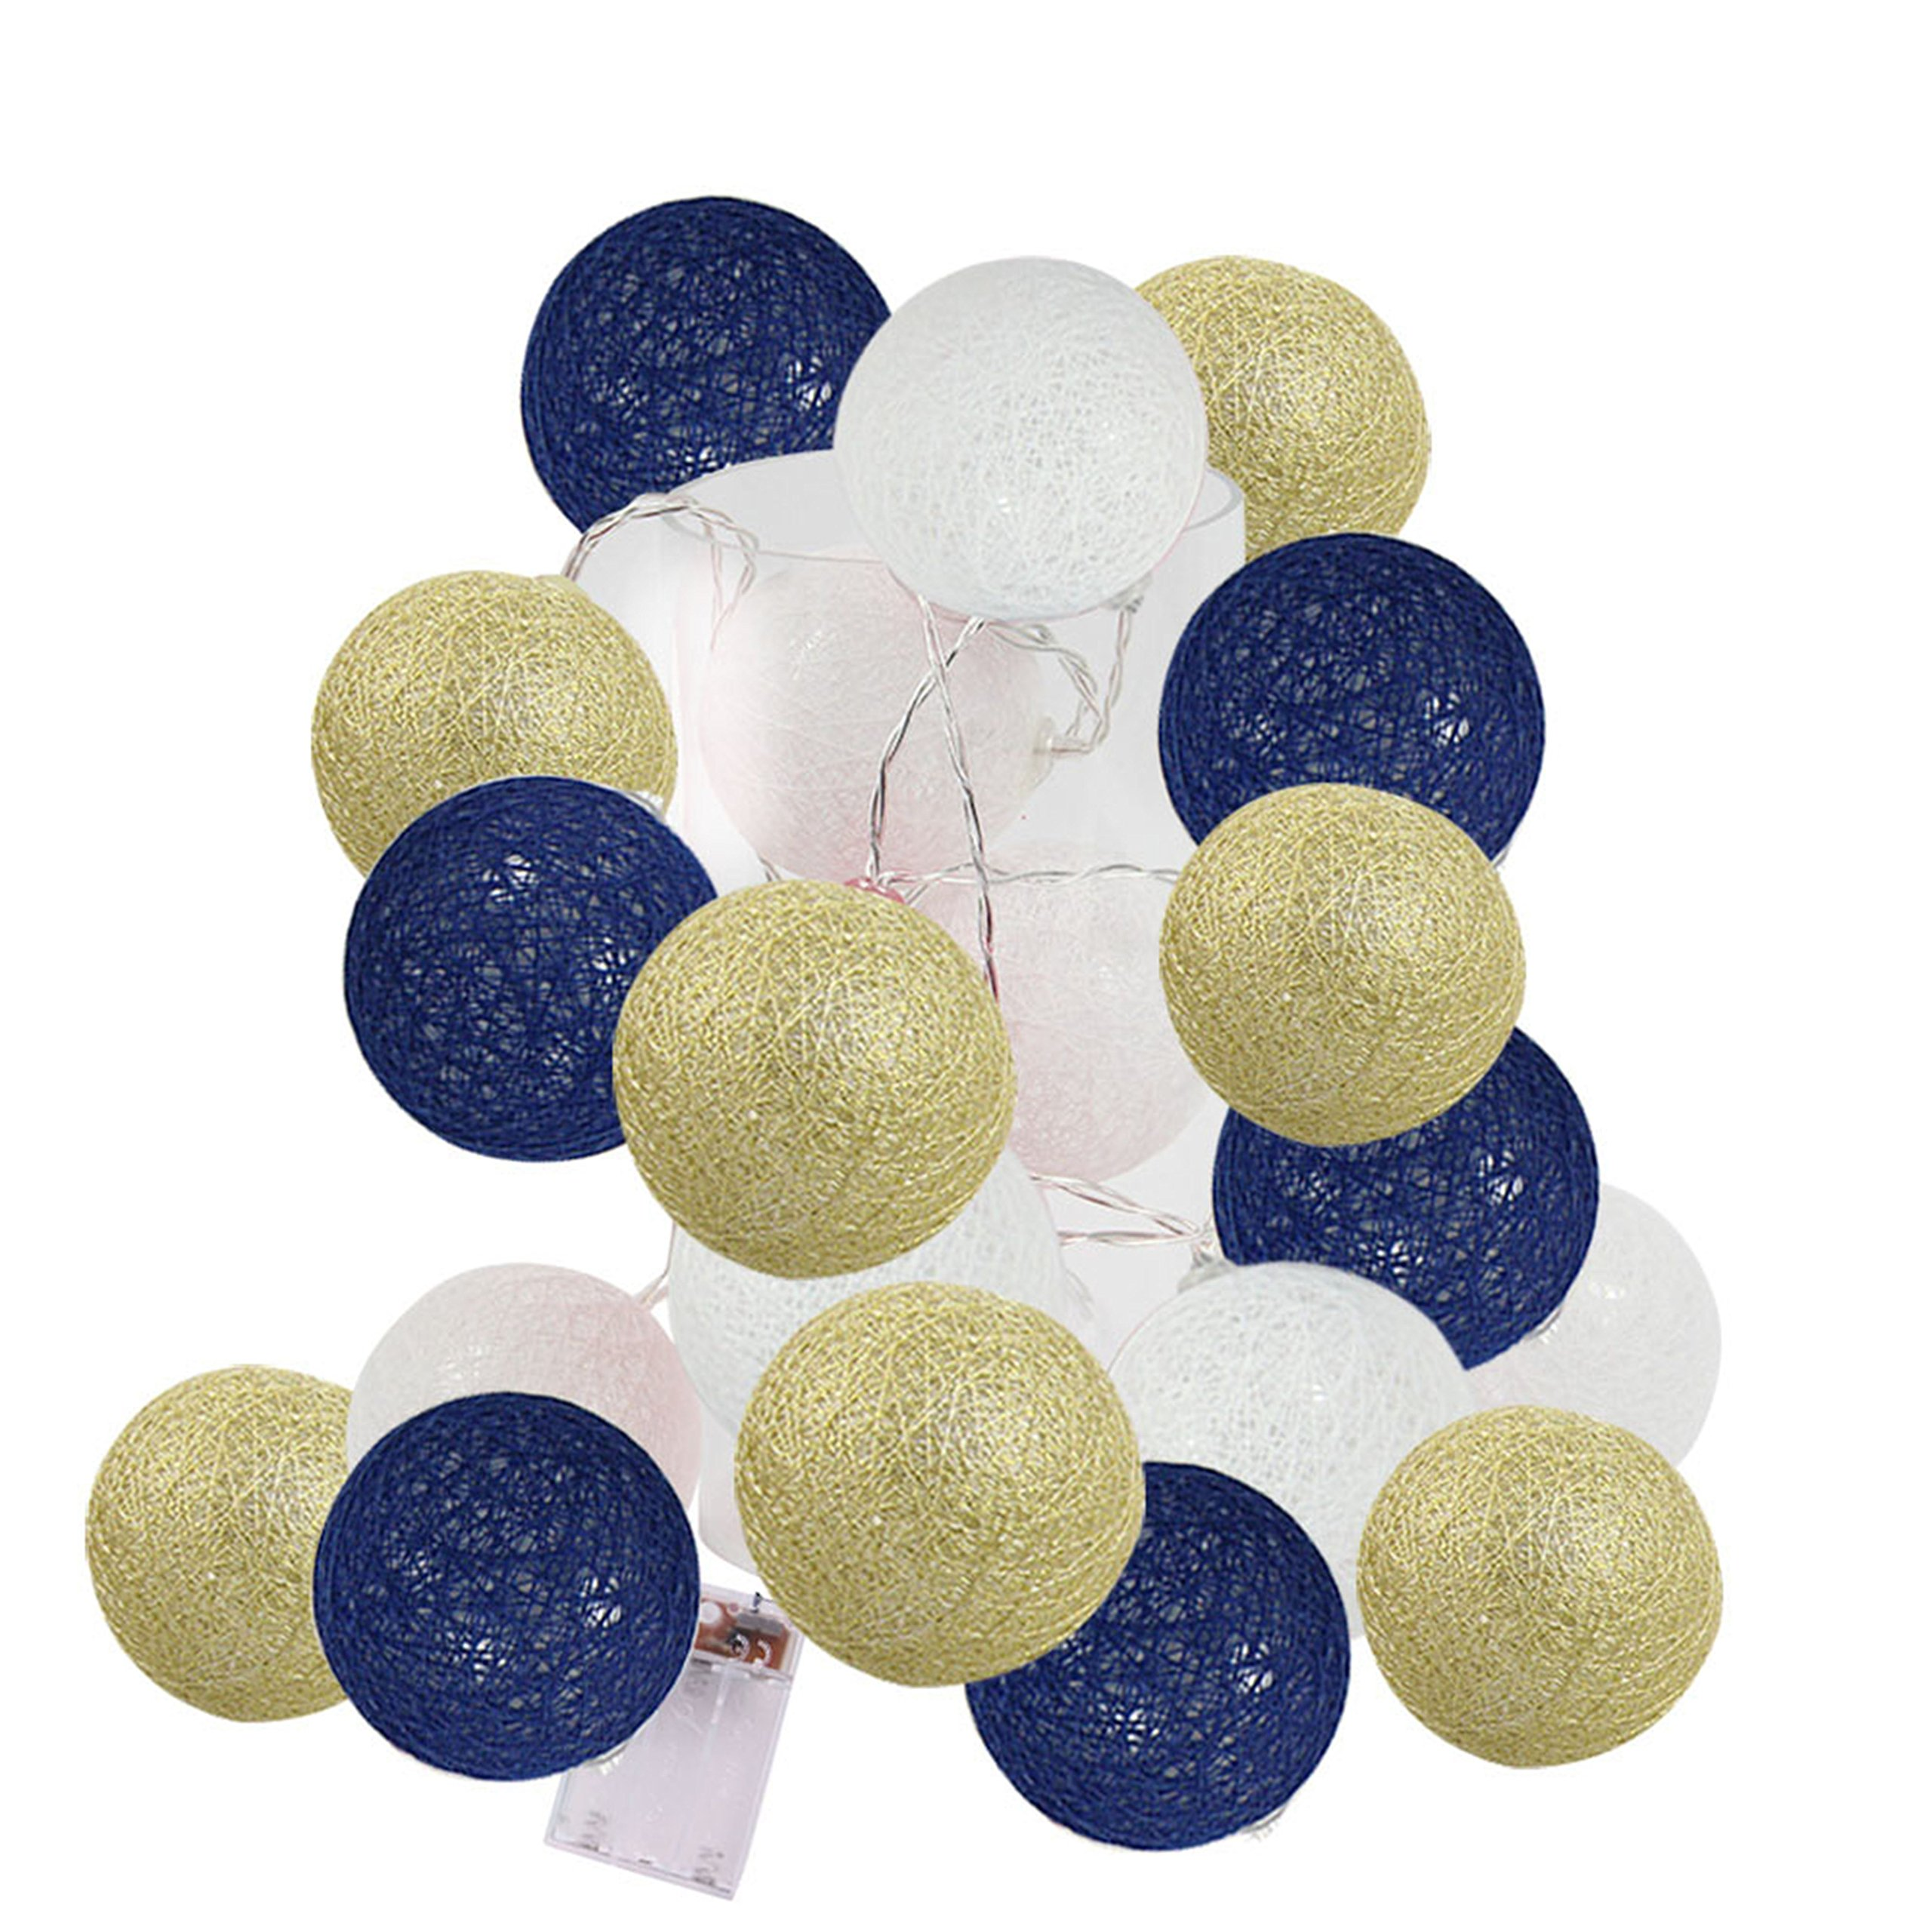 2.5m 20 LED White Gold Navy Blue Cotton Balls String Lights Battery Operated Christmas LED Garland Party Decorative Lamp for Girl Bedroom Wedding Decoration Holiday Party Kids Room Decoration Lights